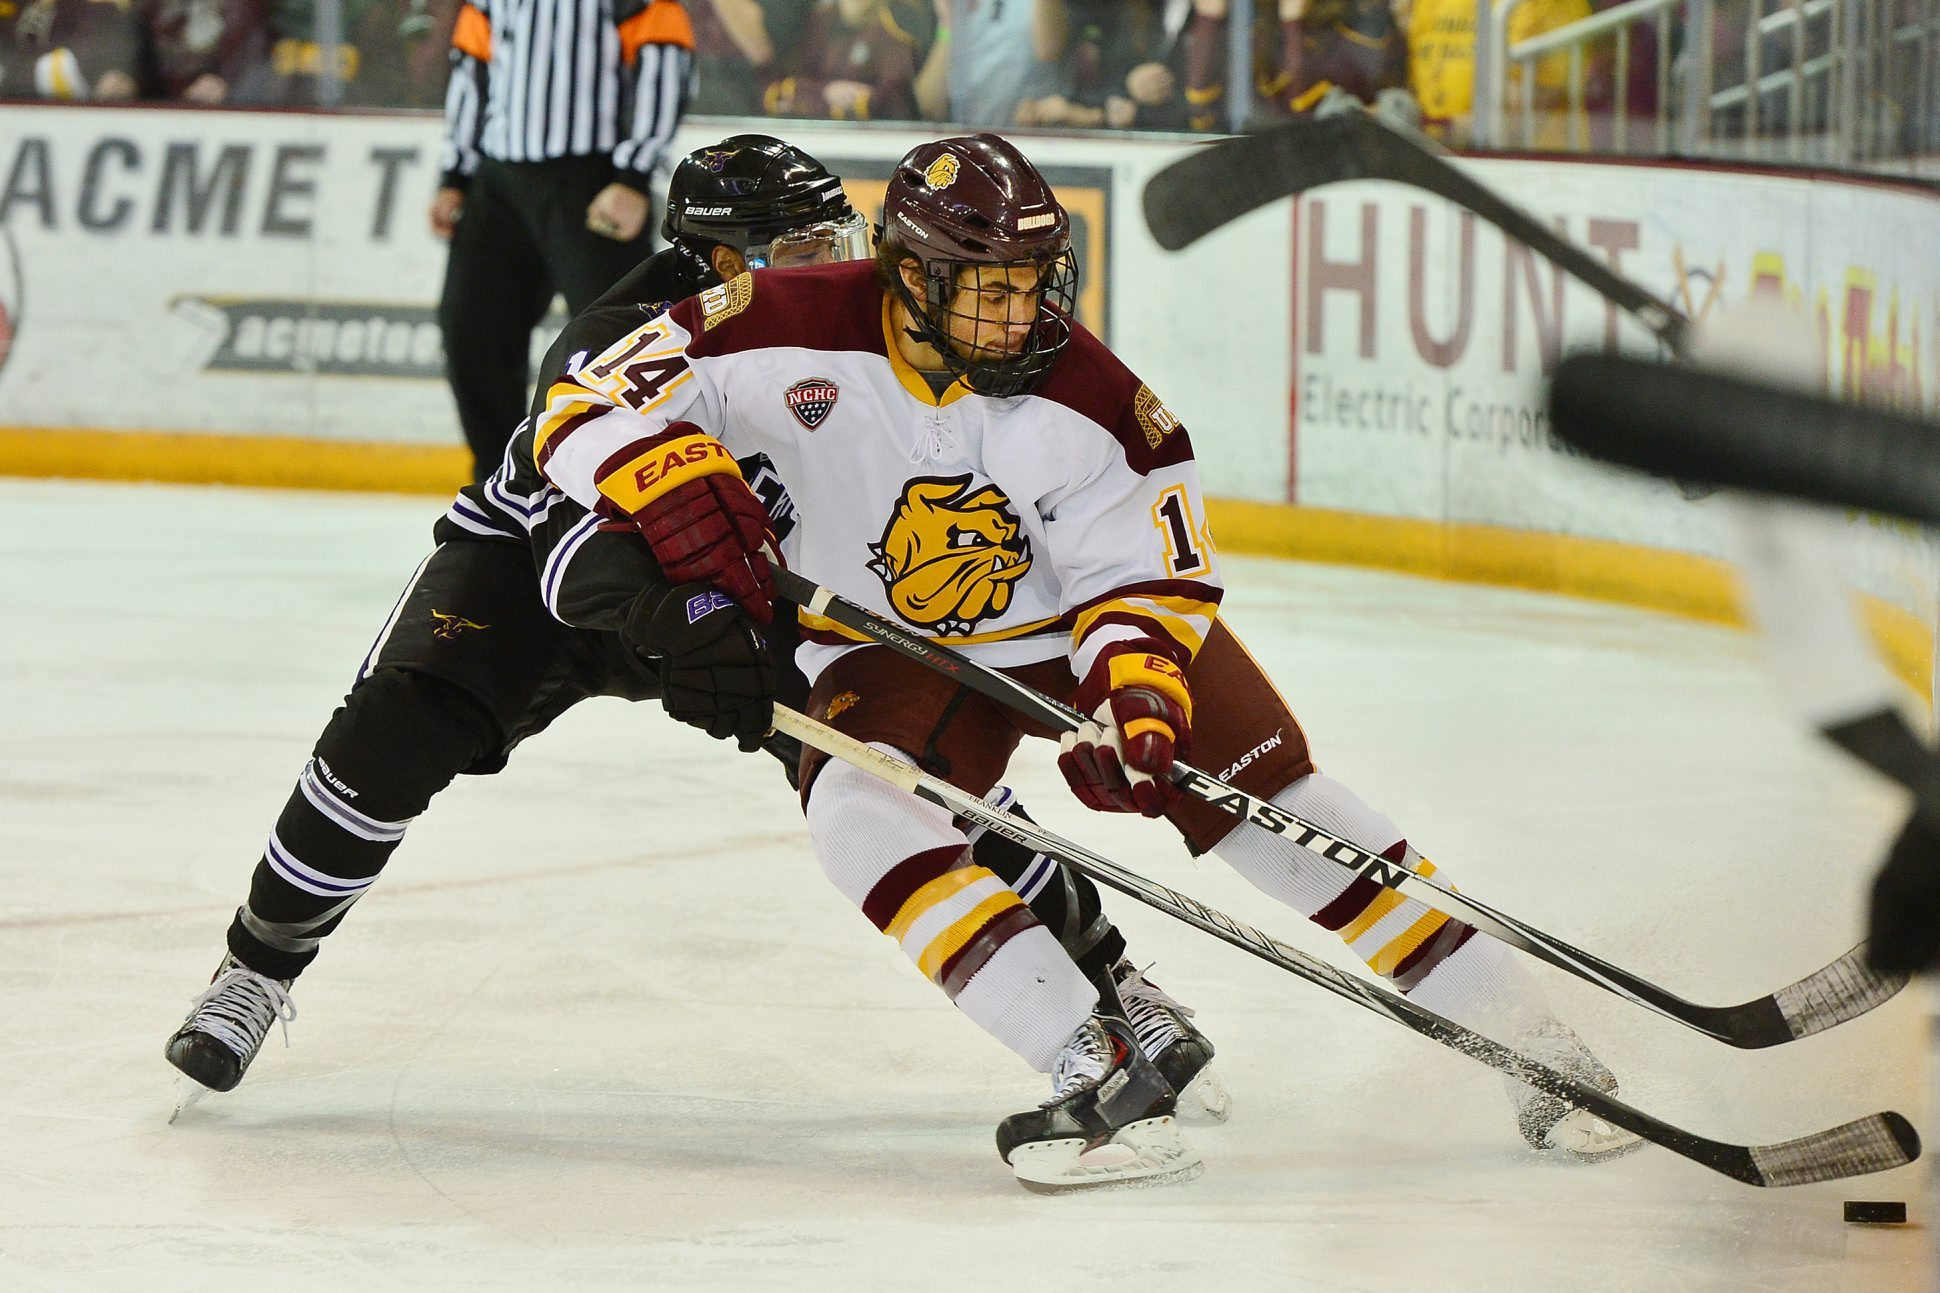 After a four-year career with Minnesota-Duluth, Alex Iafallo is on the cusp of making his NHL debut. (UMD Athletics)